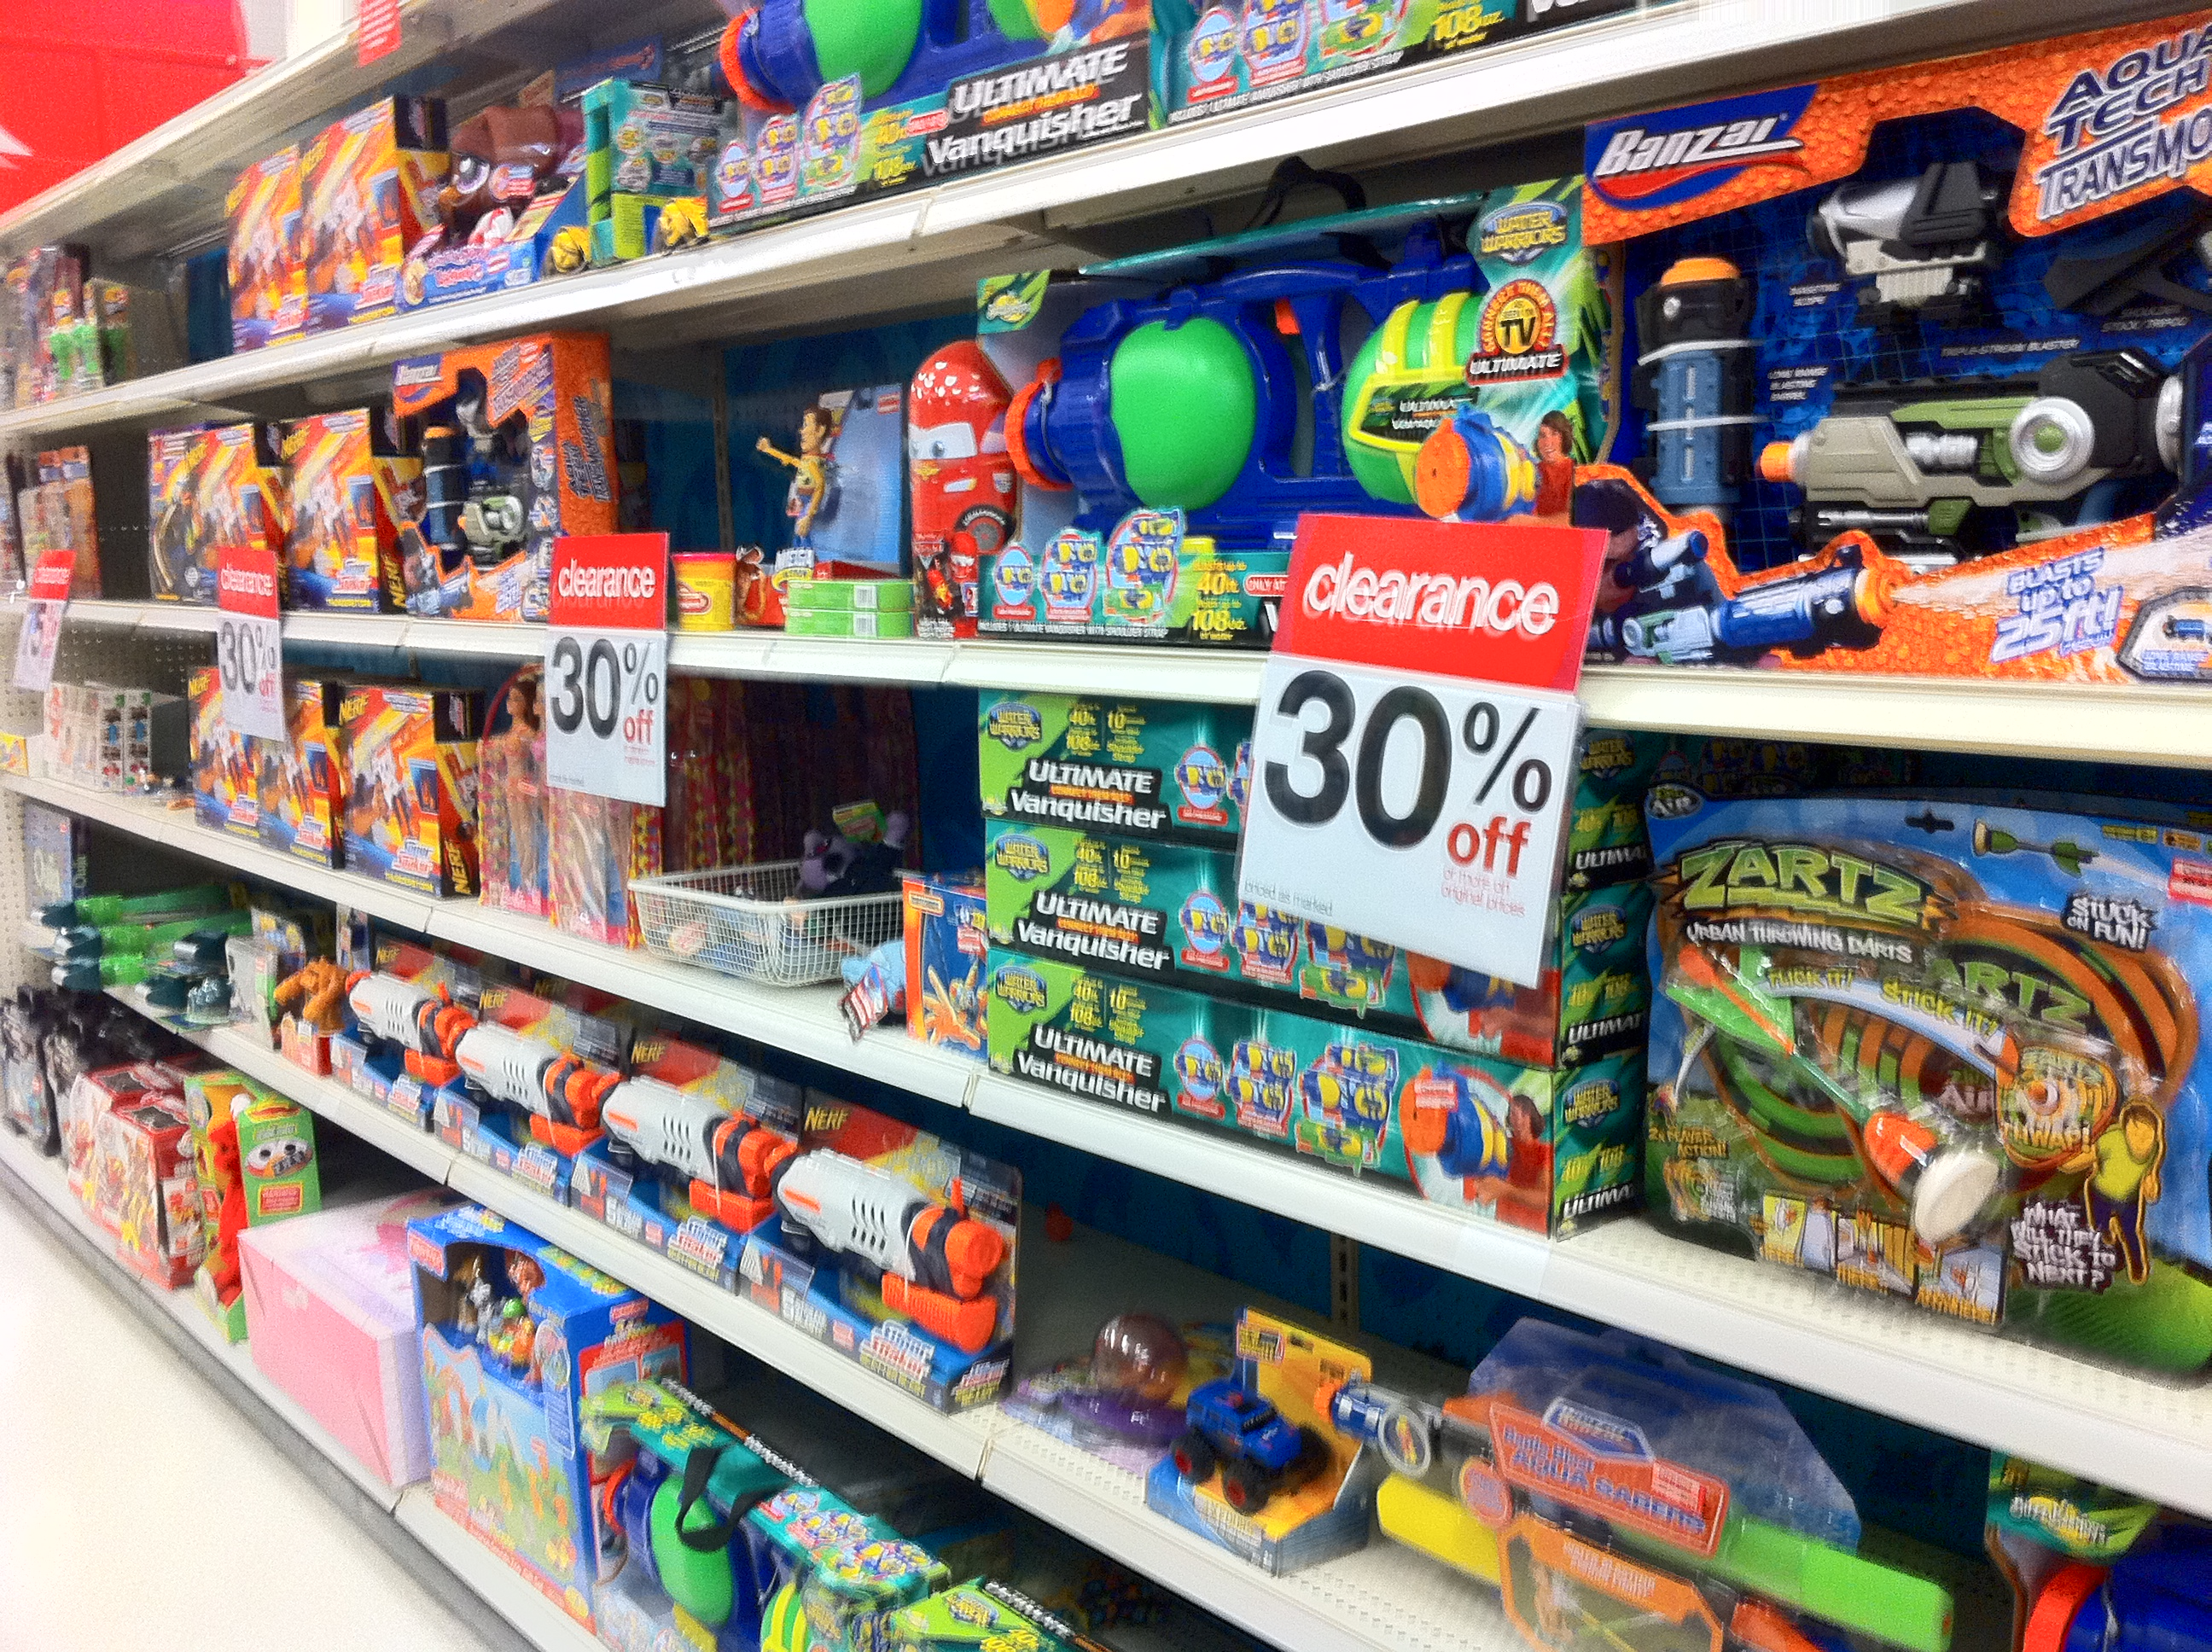 Target Toy Aisle Aisle of Clearance Toys